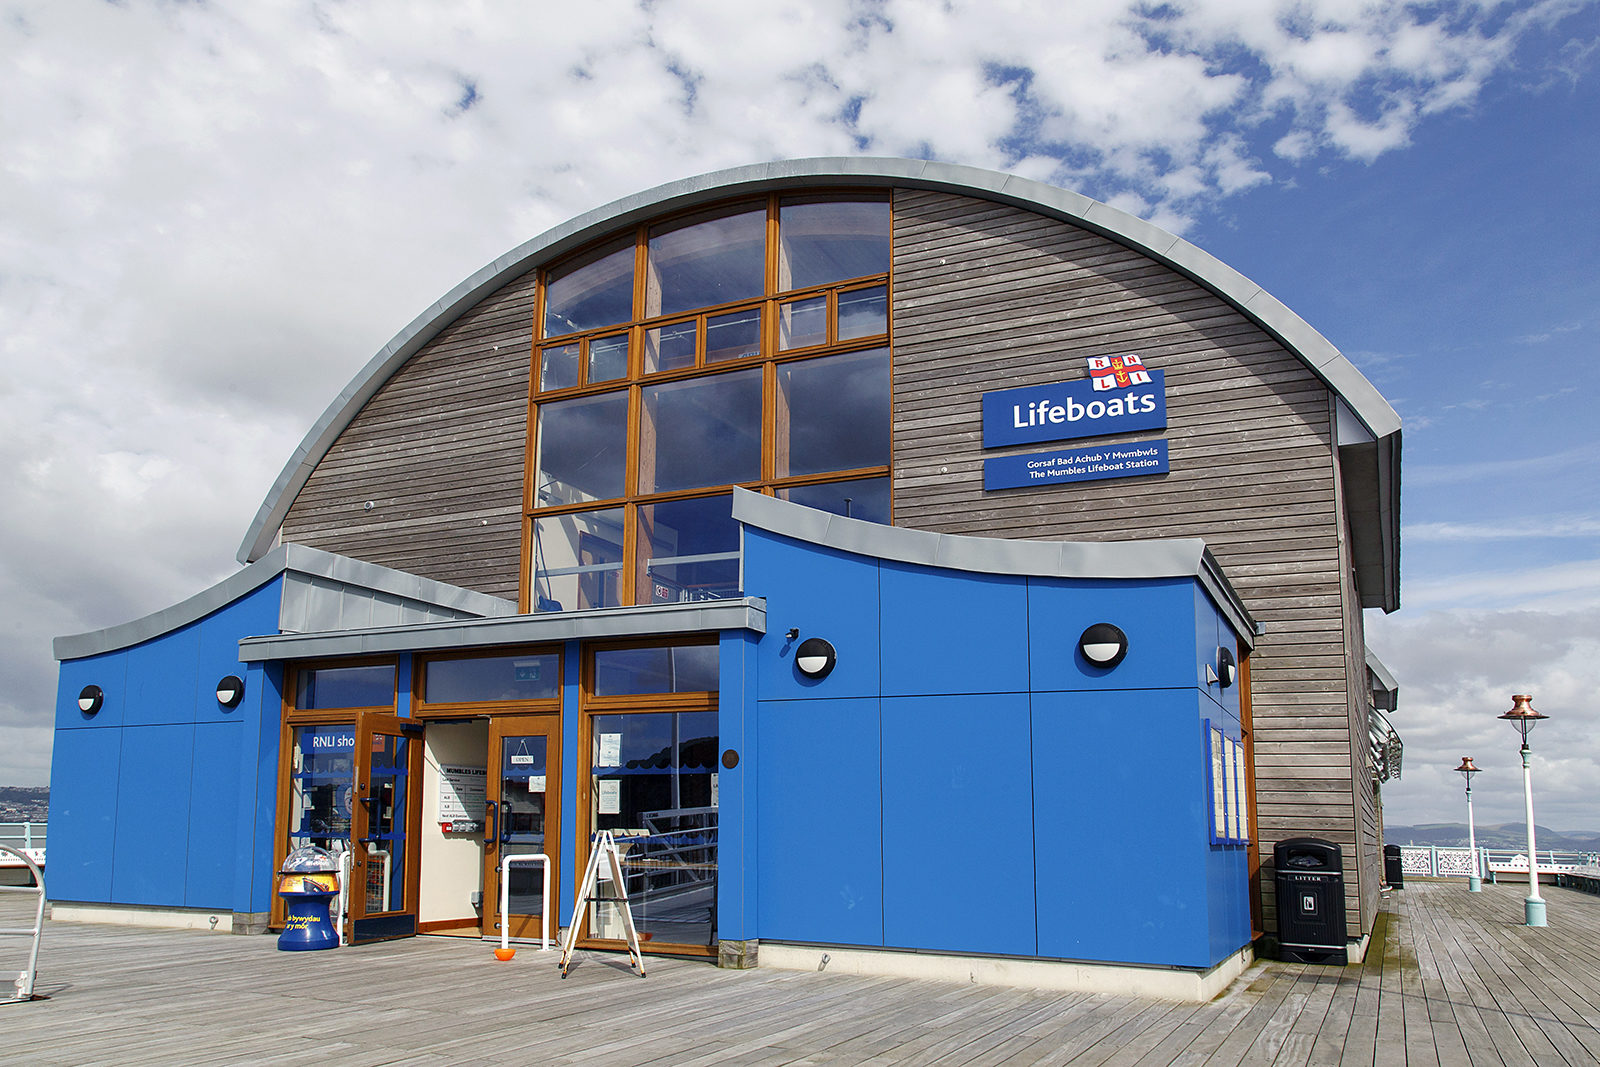 RNLI-Cladding